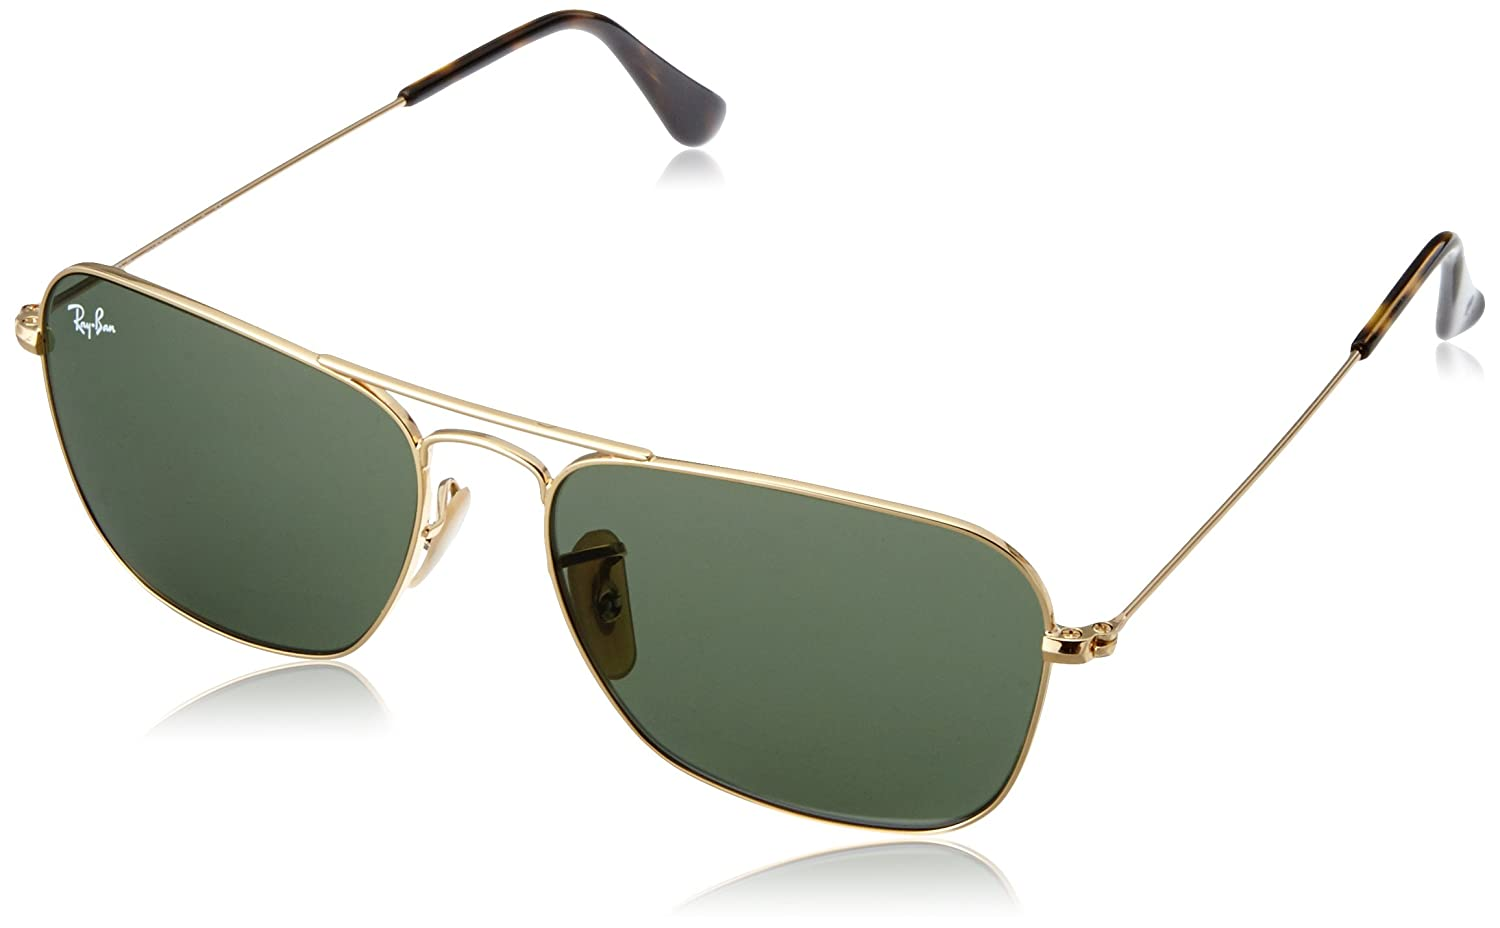 f5c63da4d0 Amazon.com  Ray-Ban Caravan RB3136 181 Non-Polarized Sunglasses Gold Frame   Dark Green Lenses 55mm  Clothing